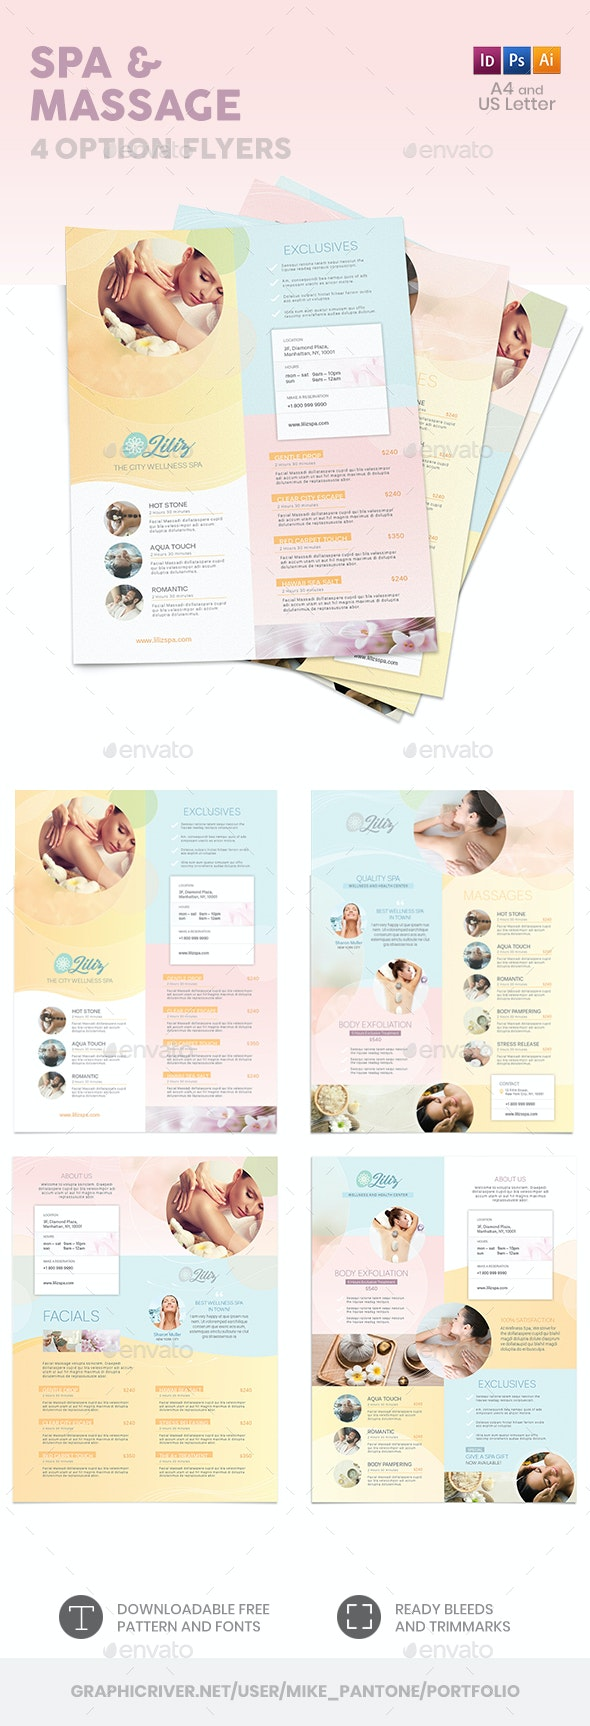 Spa and Massage Flyers – 4 Options - Commerce Flyers